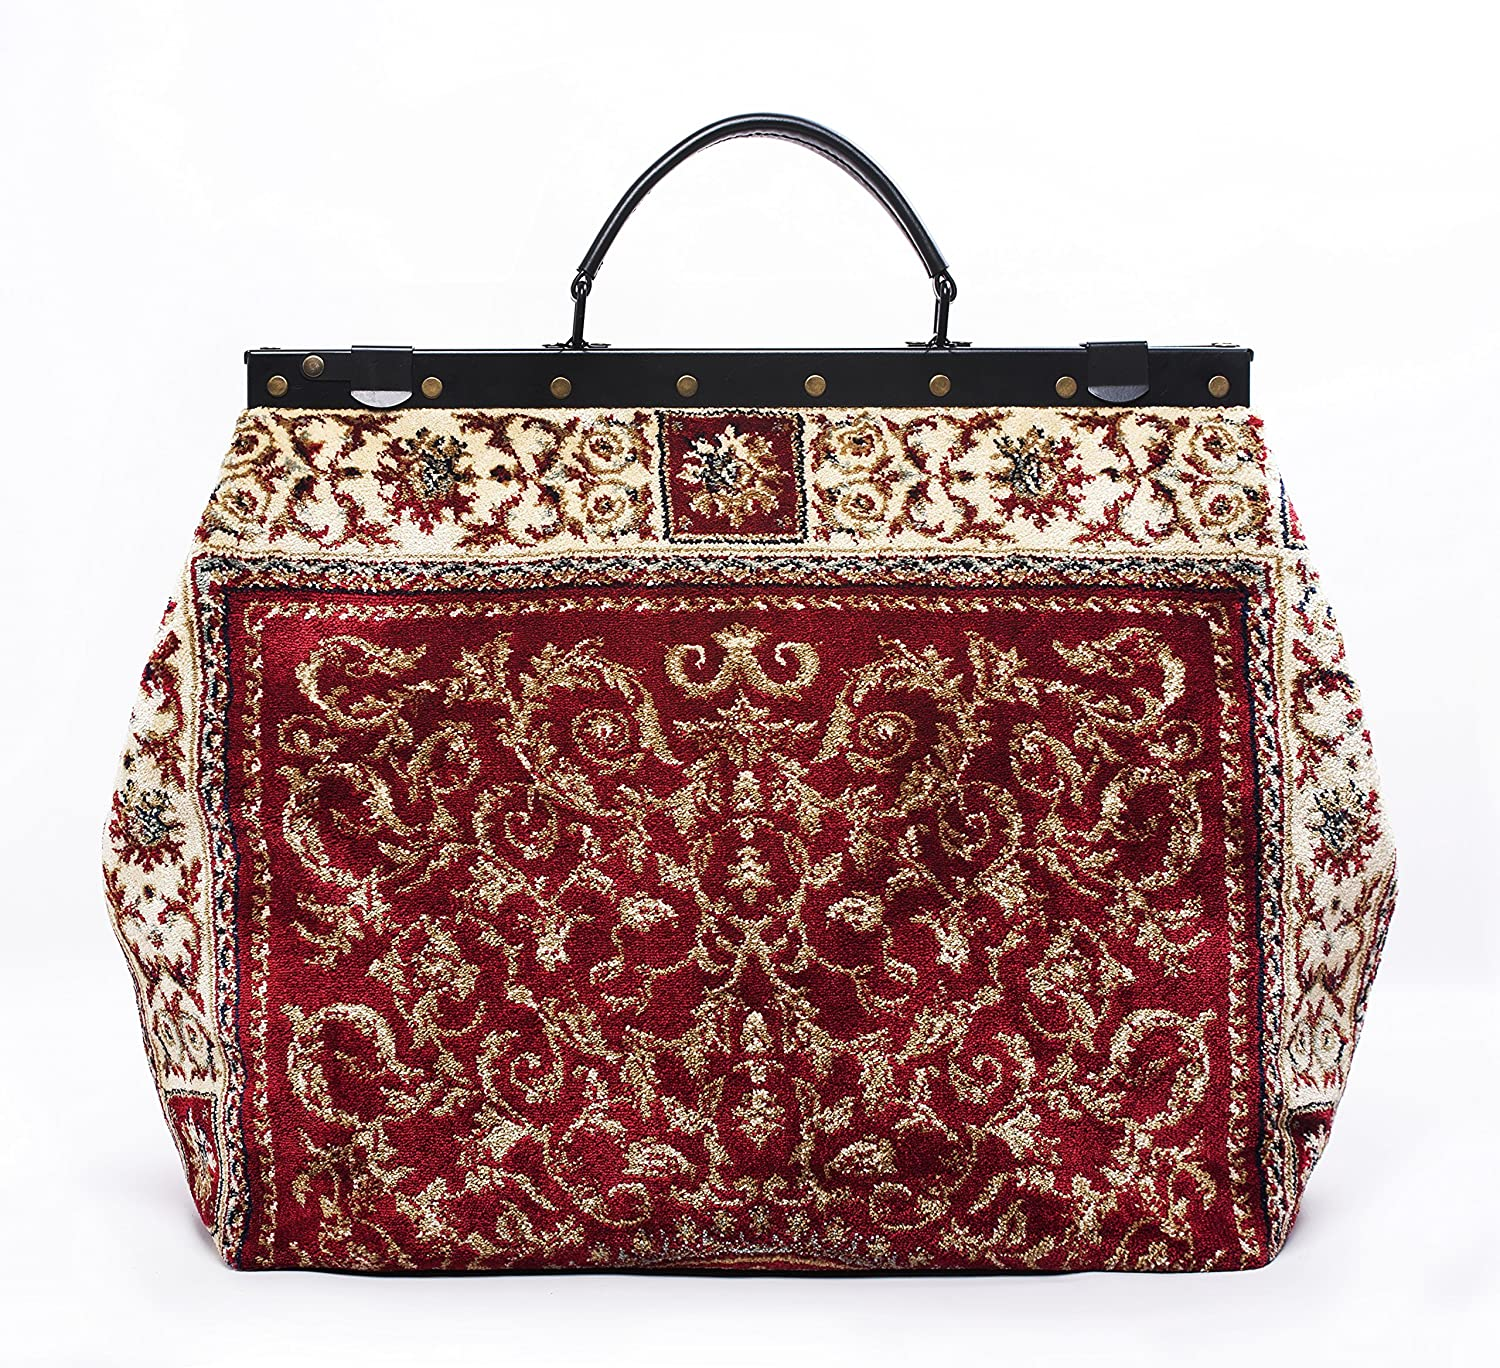 Carpet Bag SAC-VOYAGE Ancient Red - Magical Mary Poppins Vintage-Style Carpet Bag with leather handle and detachable strap.